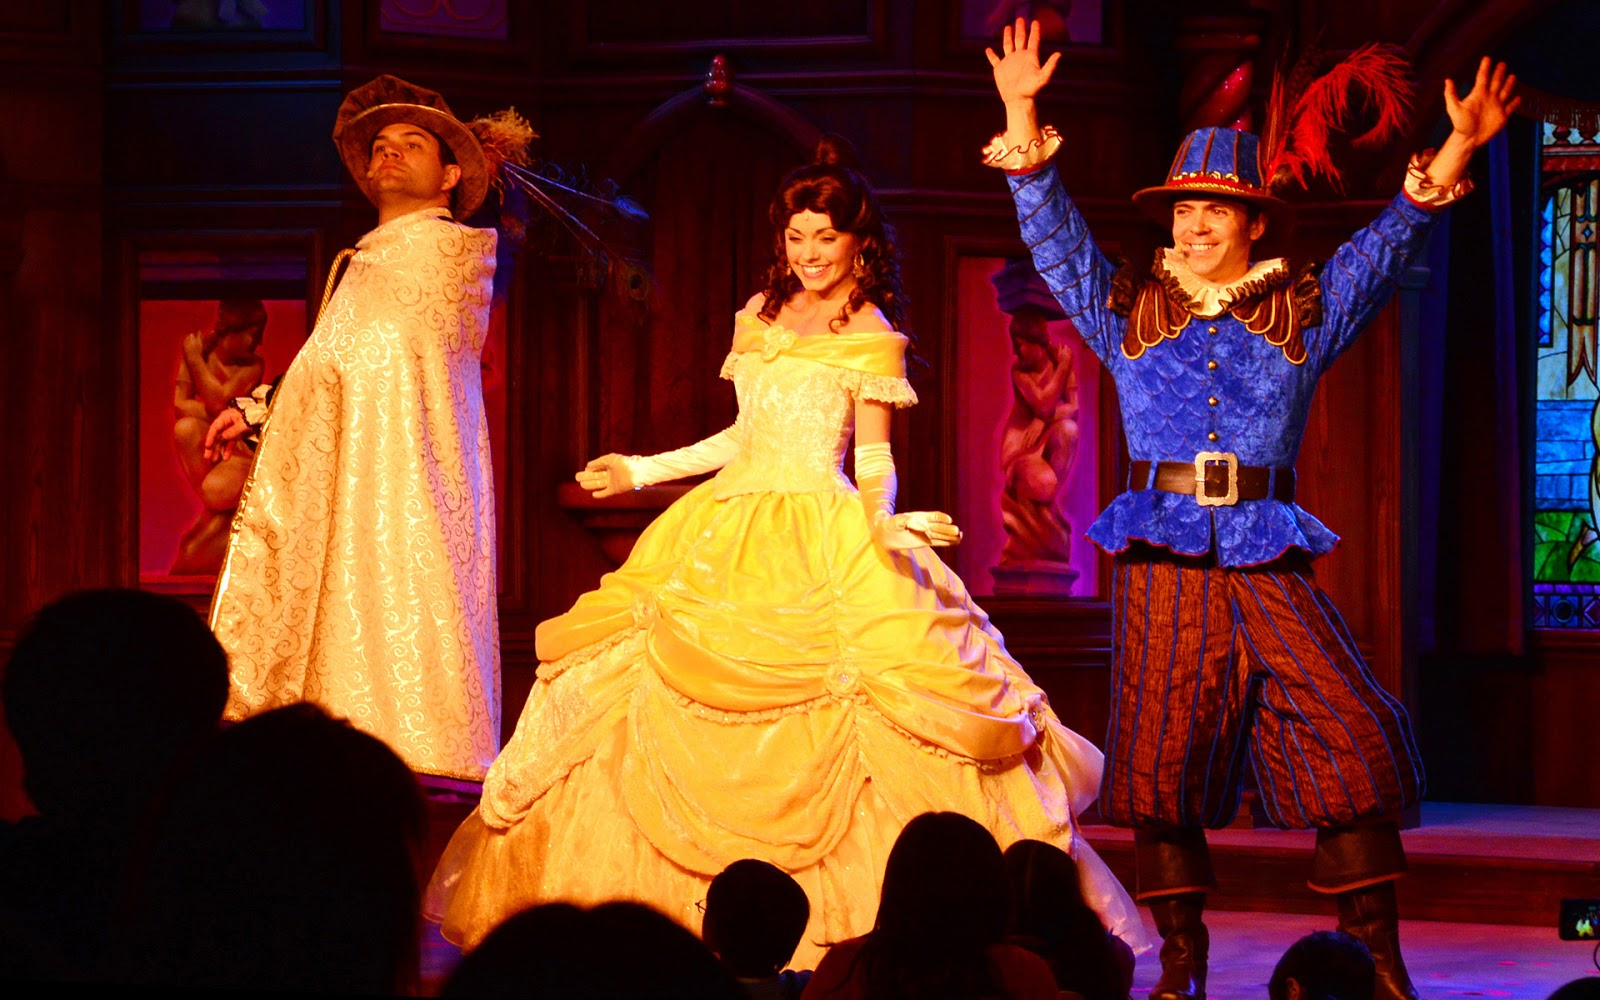 The Royal Theatre Presents Beauty And The Beast